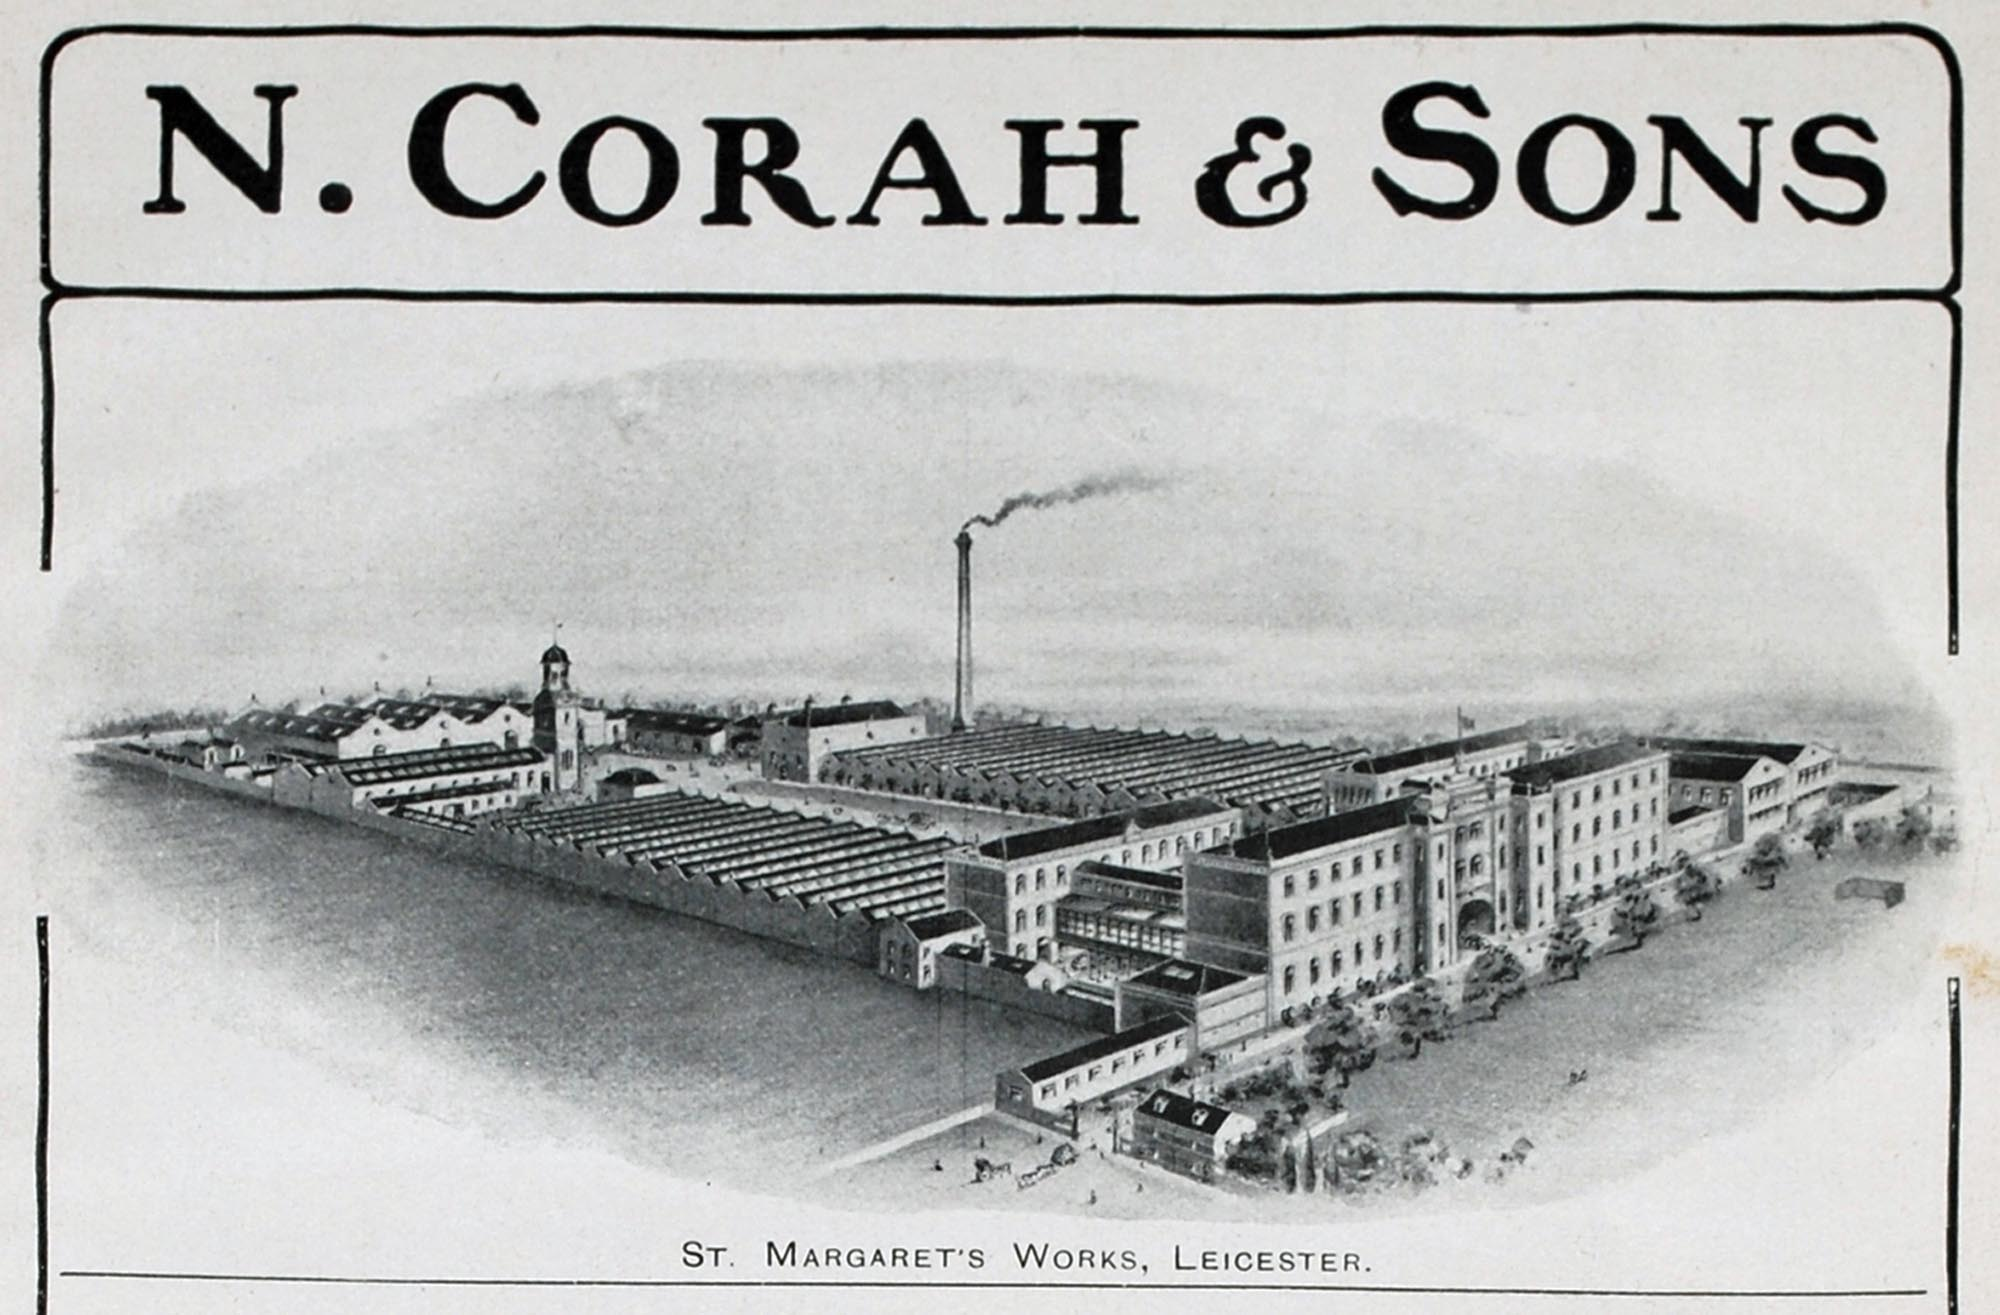 A drawing depicting the vast St Margaret's Works, the factory owned by Corah & Sons Ltd. -